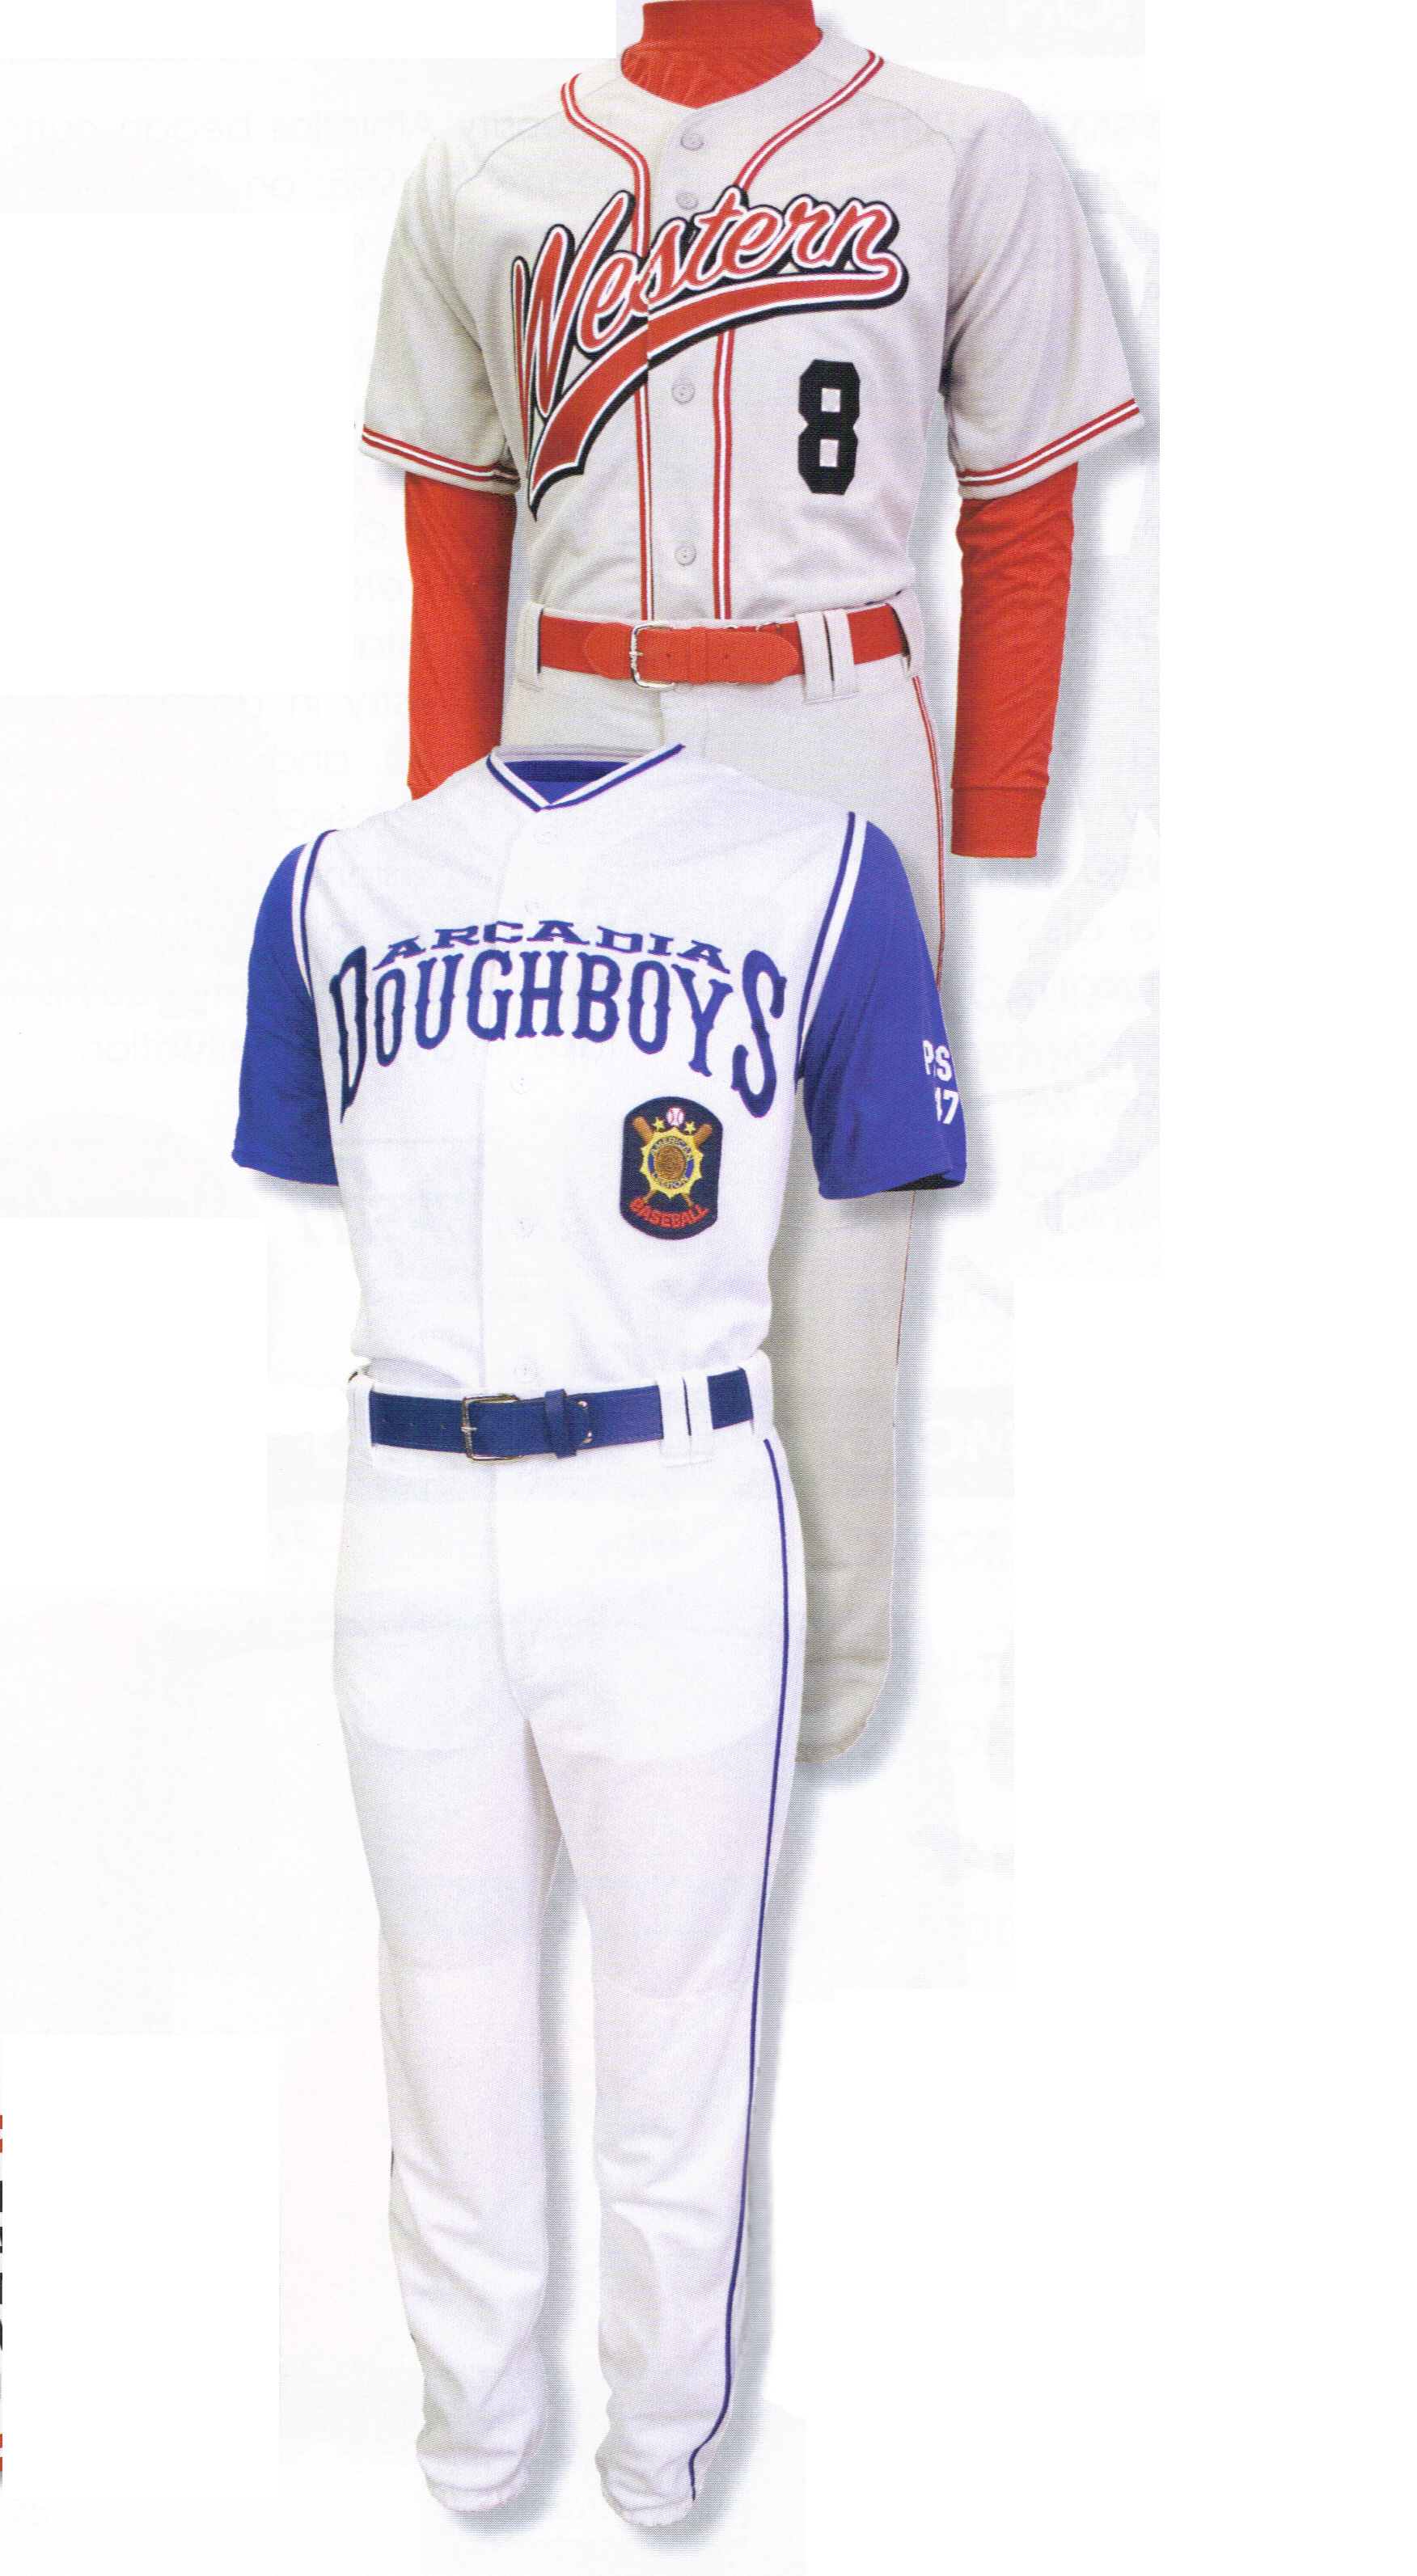 new ideas for custom baseball uniforms and custom softball uniforms or